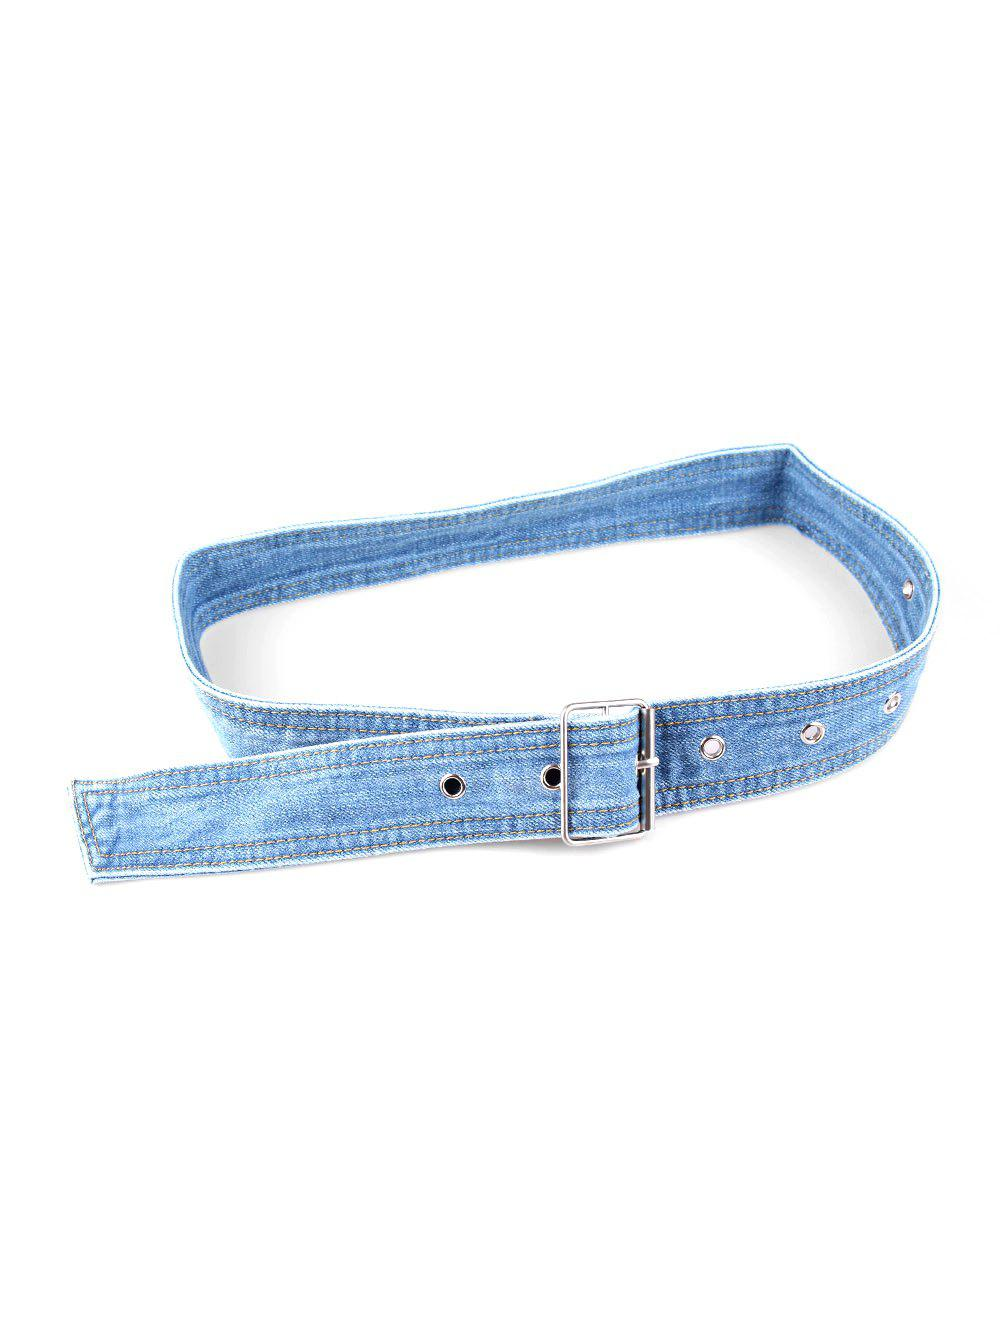 Shop Pin Buckle Casual Denim Belt